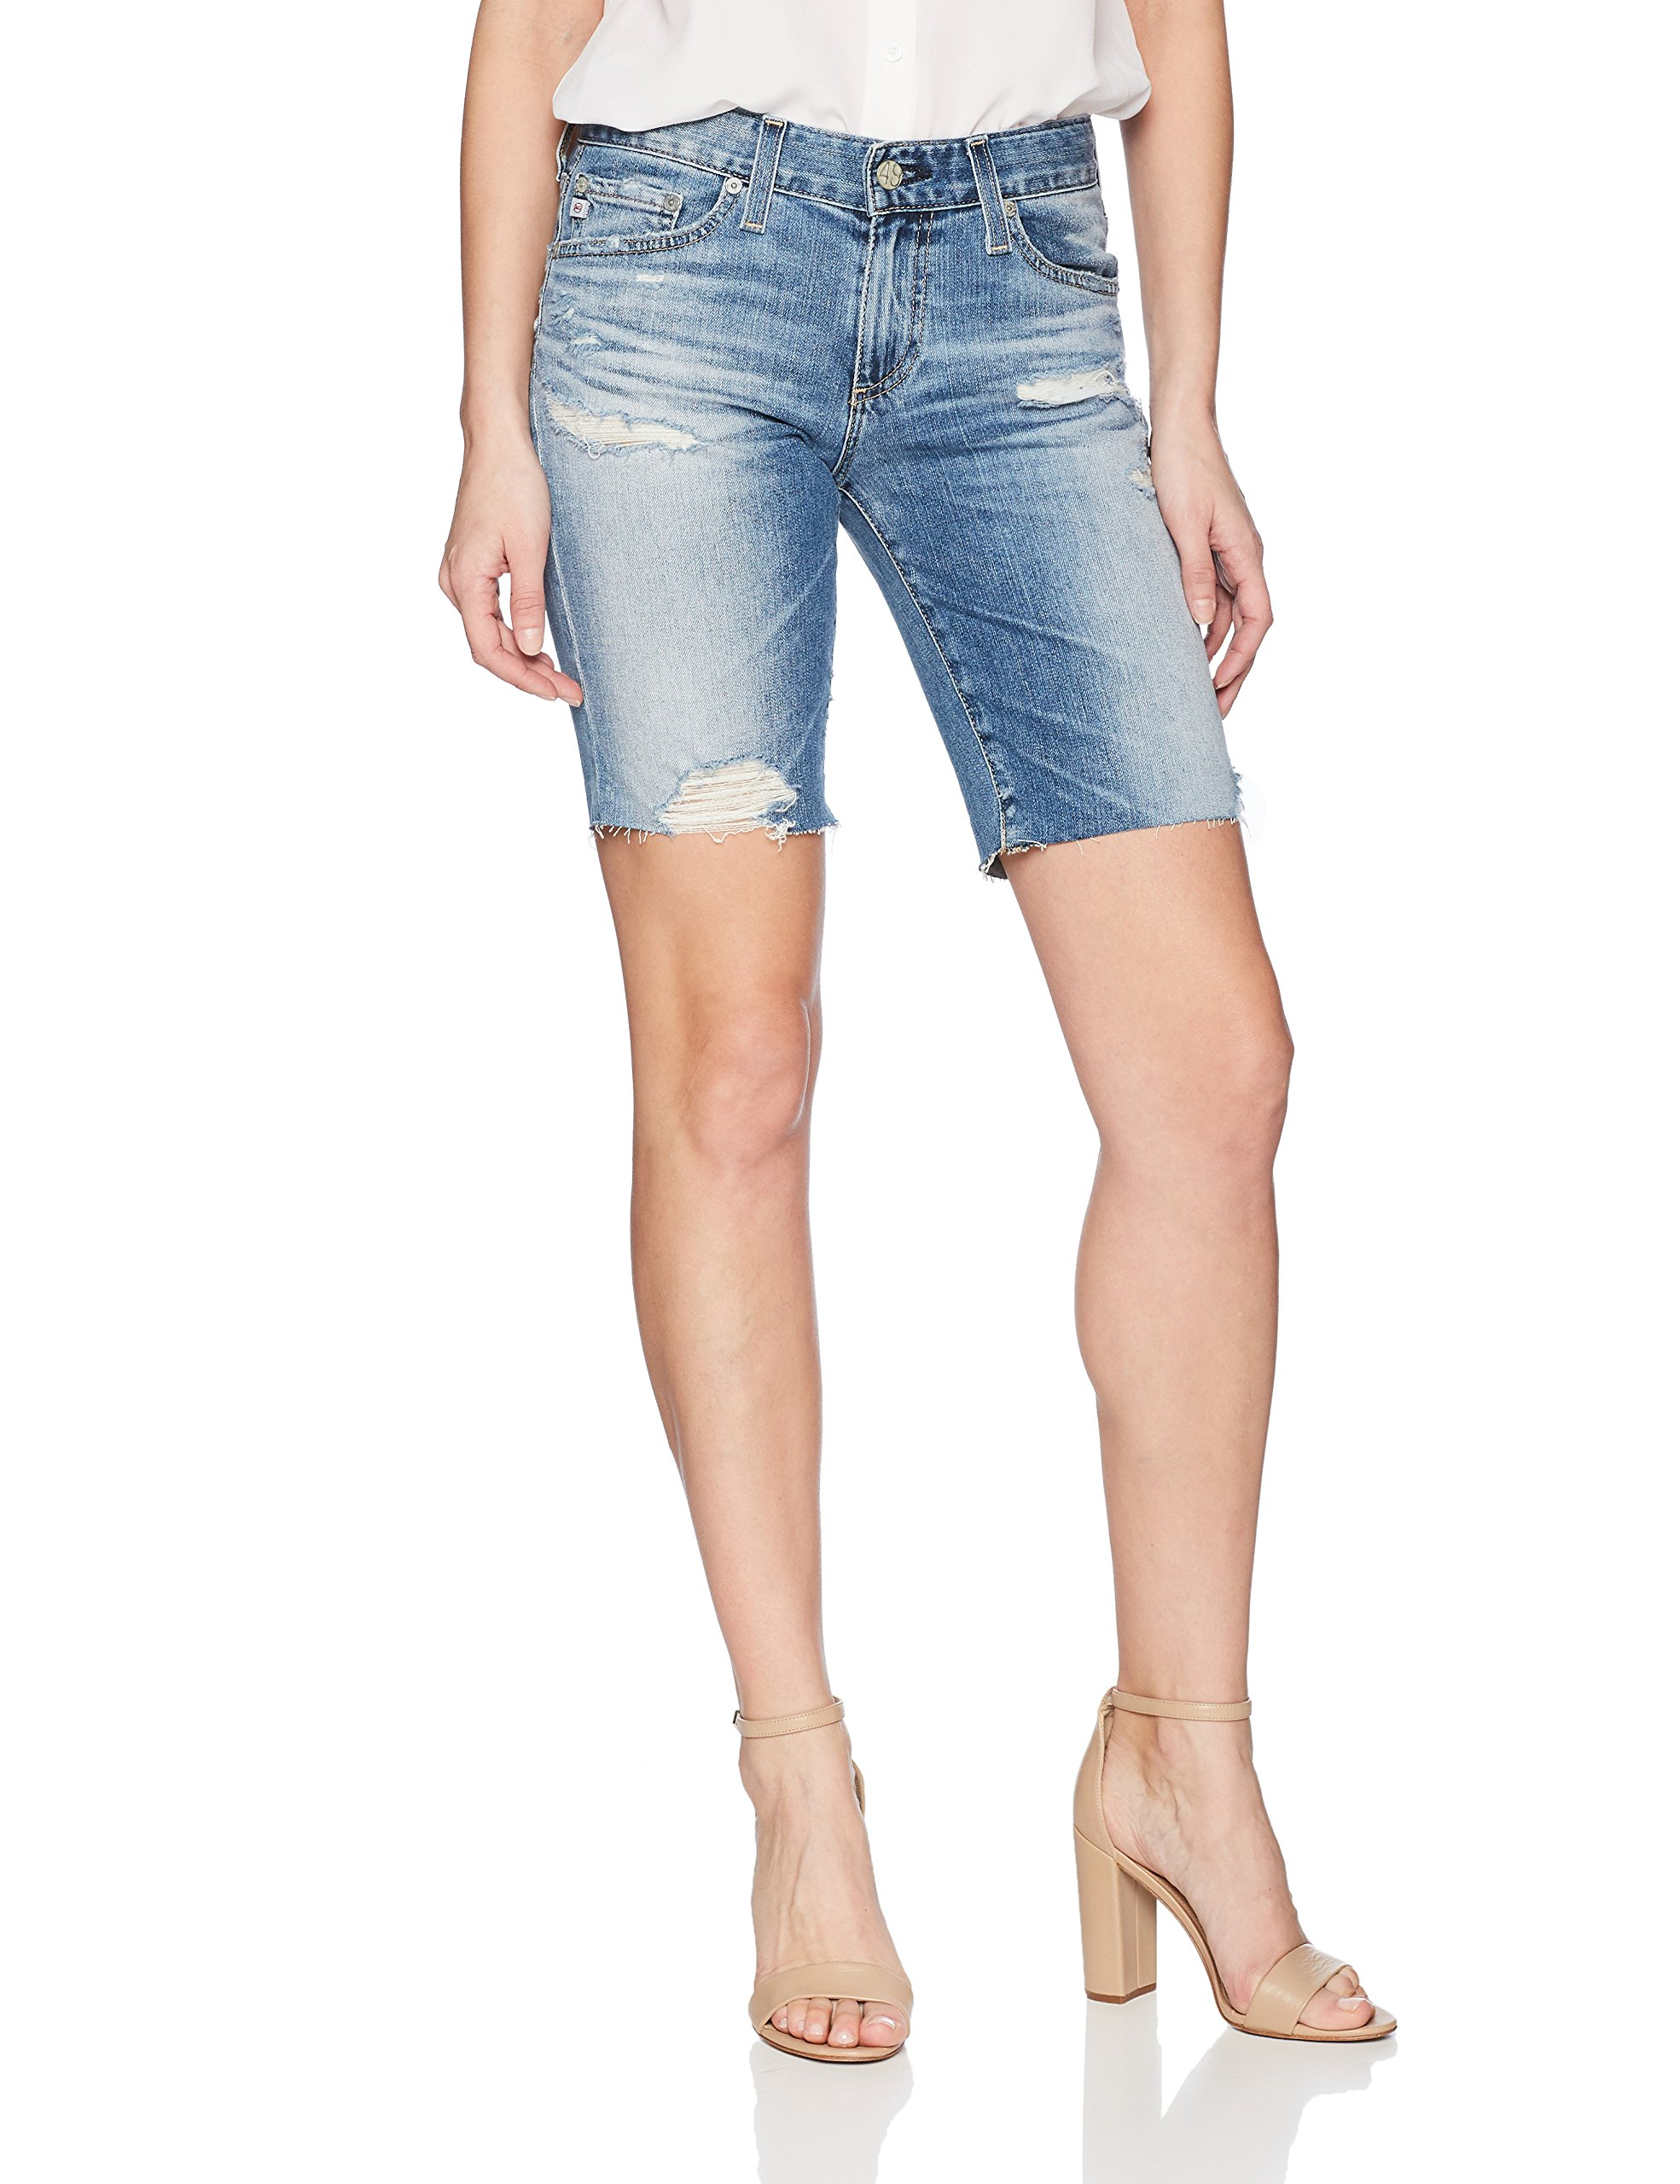 AG Adriano Goldschmied Women's Nikki Denim Short, 16 Years Indigo deluge Destruc, 27